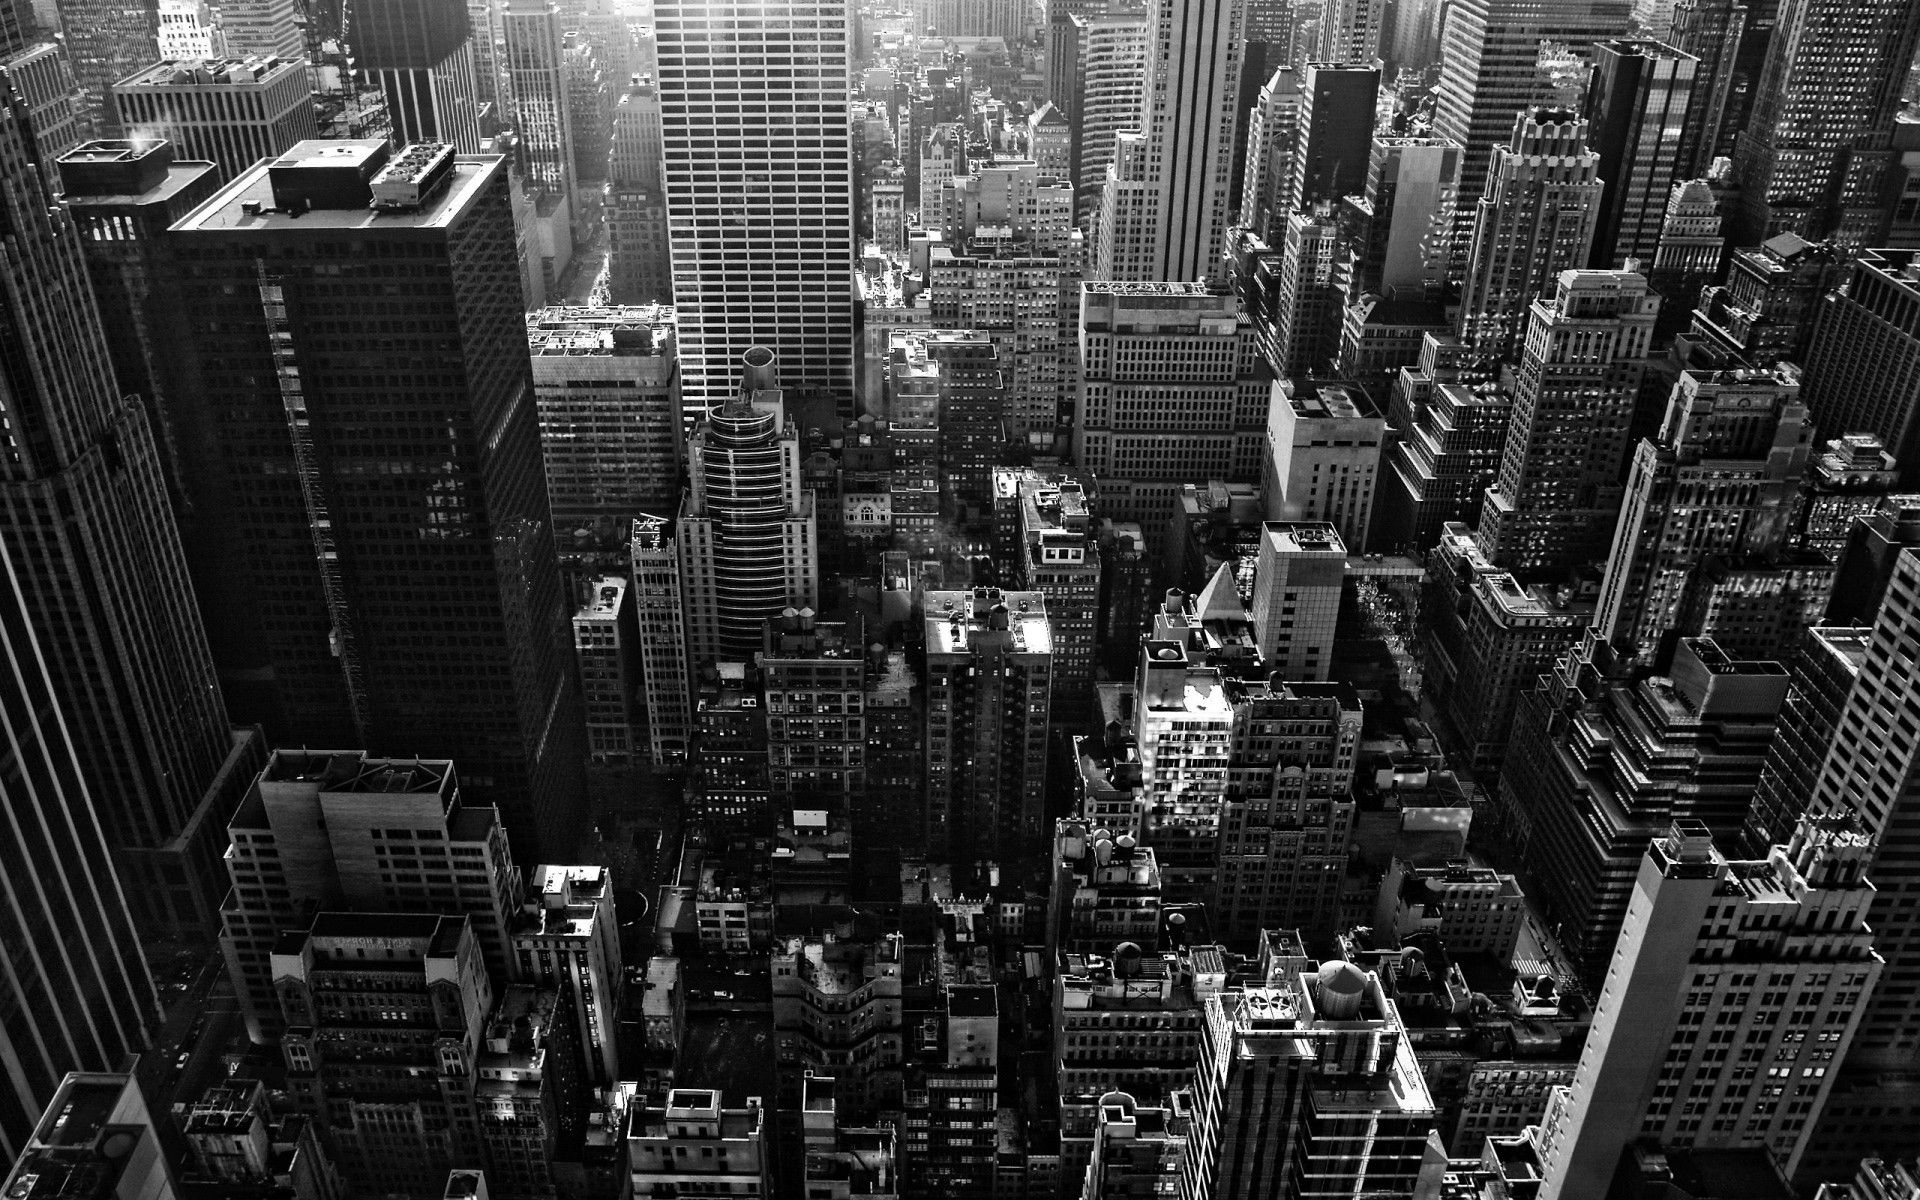 Black And White Hd Wallpapers Wallpapers Backgrounds Images Art Photos Black And White City Black And White Wallpaper Phone Cityscape Wallpaper